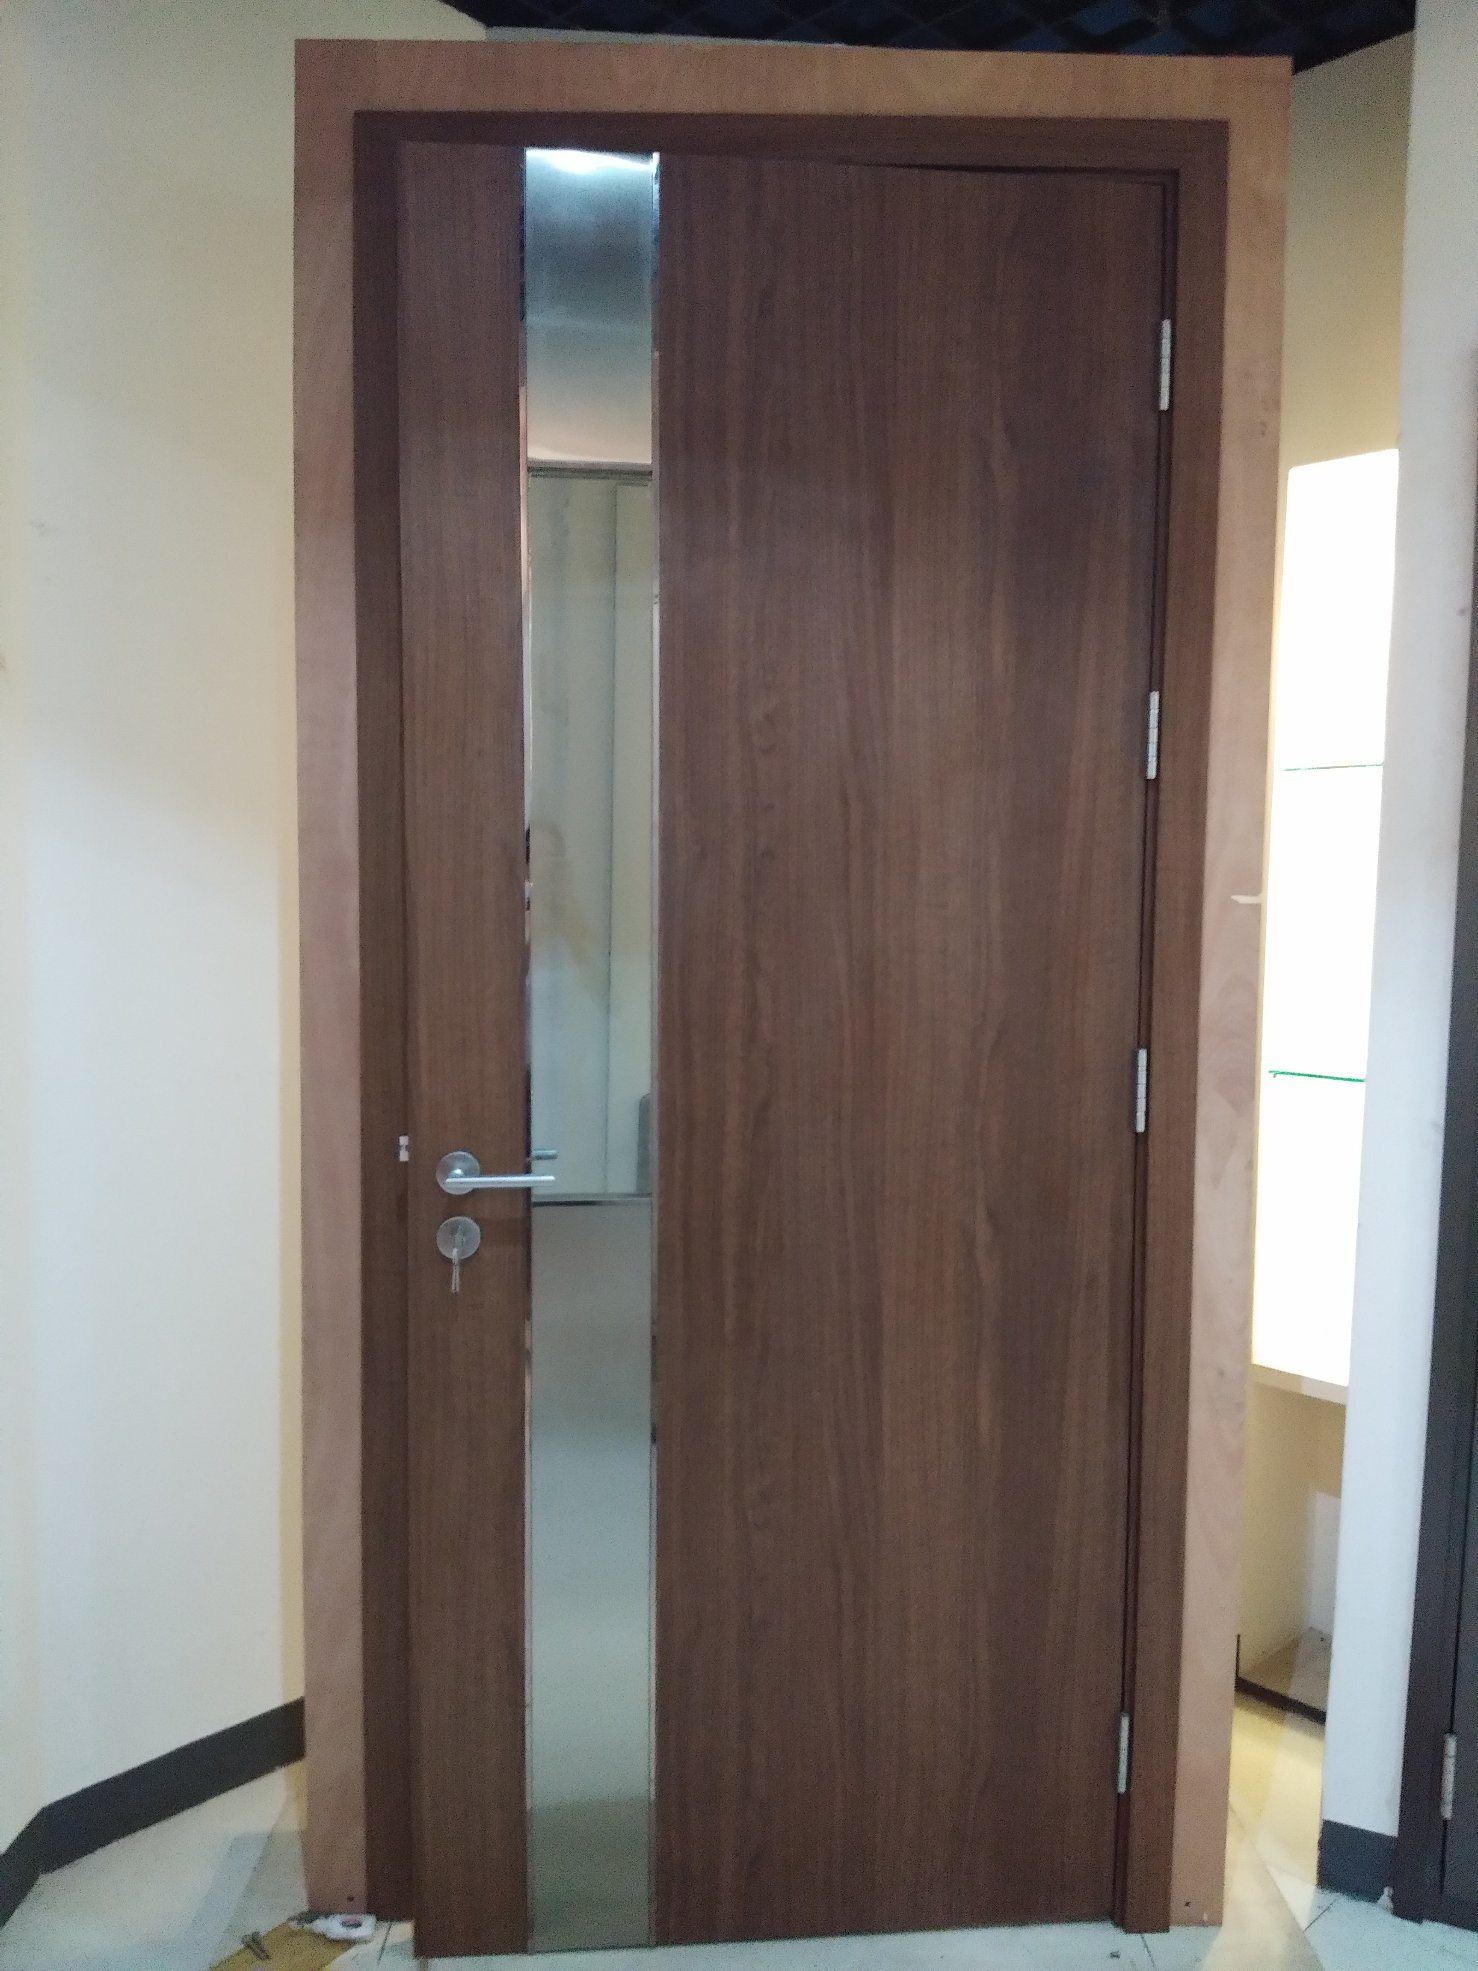 China Exterior Interior Security Fire Proof Emergency Entry Exit Prevent Rated Solid Wood Door With Core